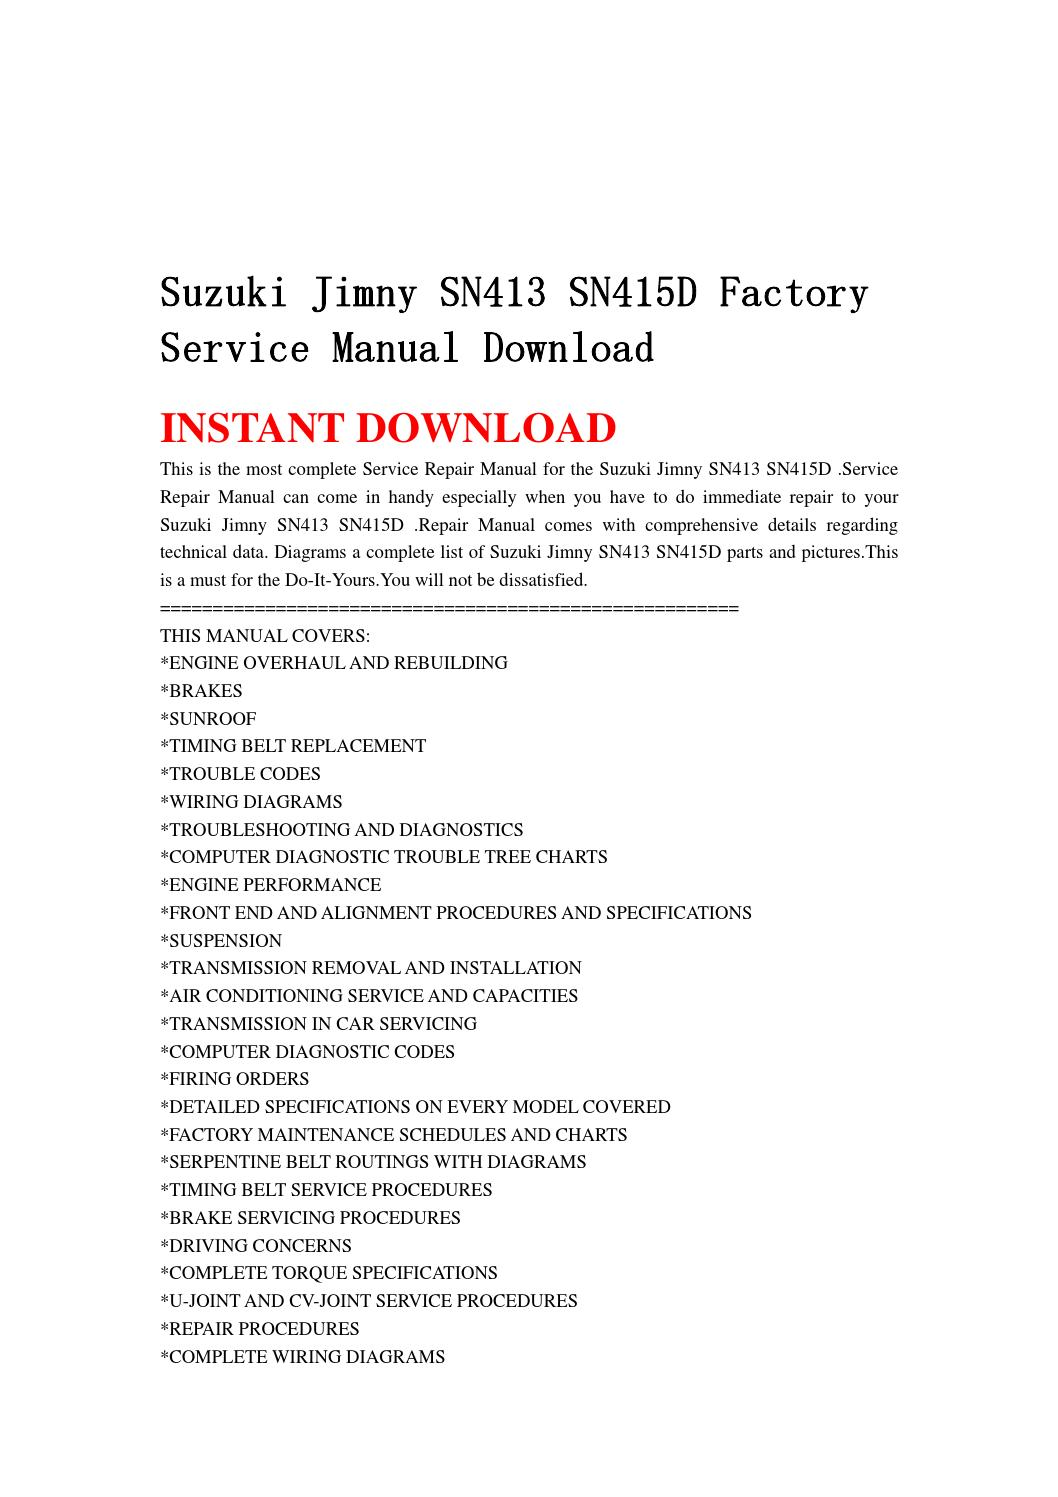 Suzuki Jimny Sn413 Sn415d Factory Service Manual Download By Jfnhsbef6t